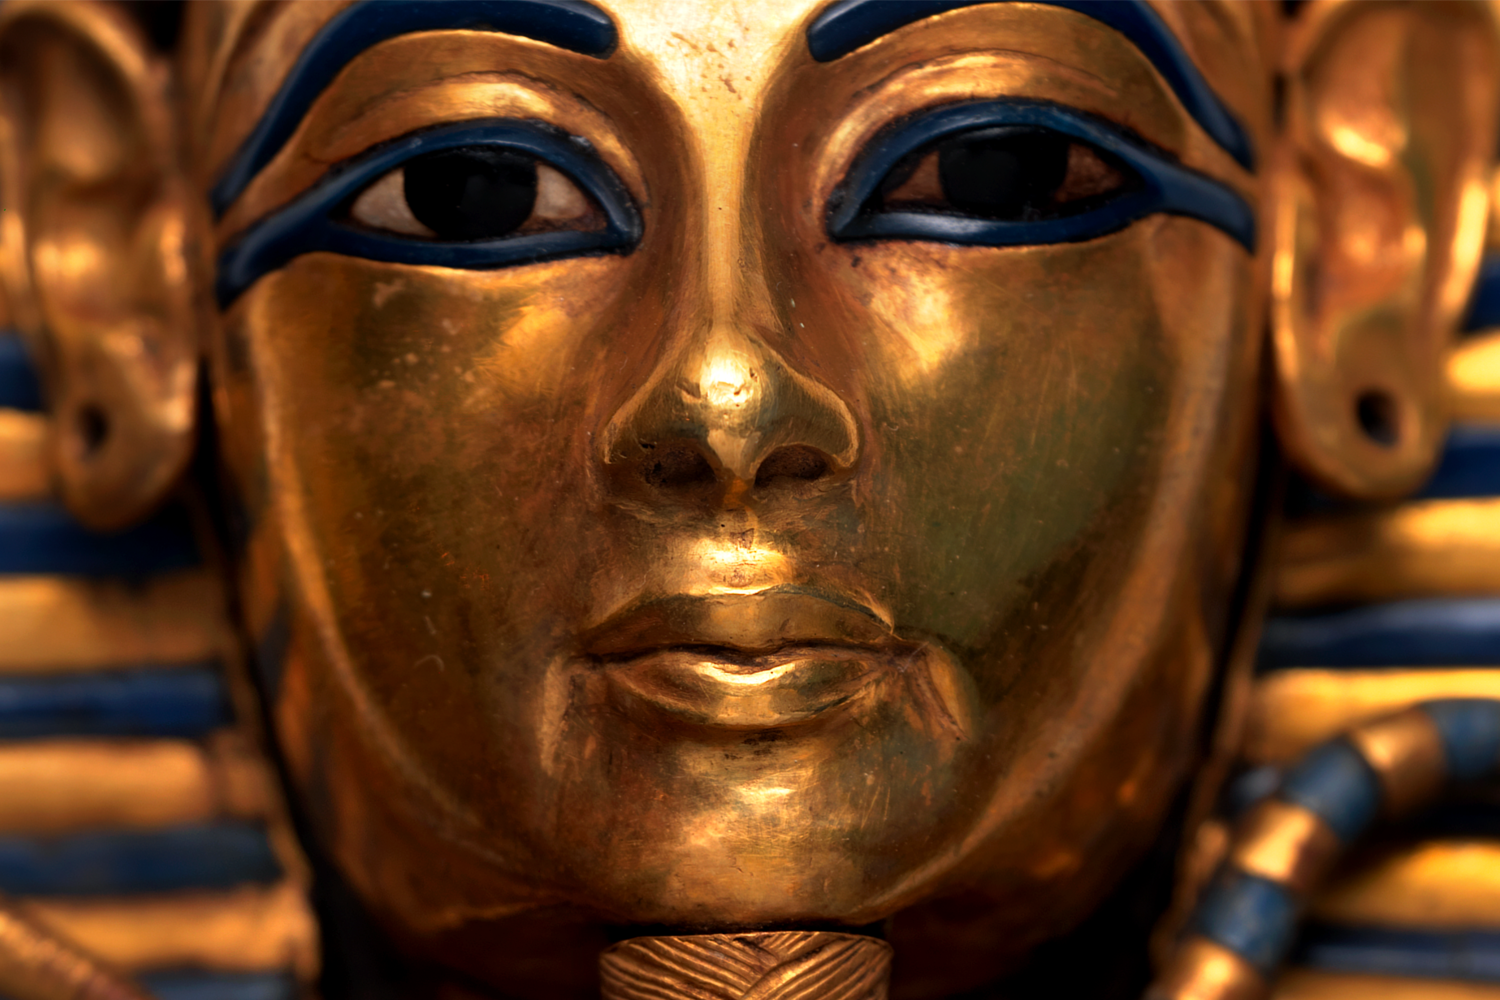 King Tut: Treasures of the Golden Pharaoh (2018)